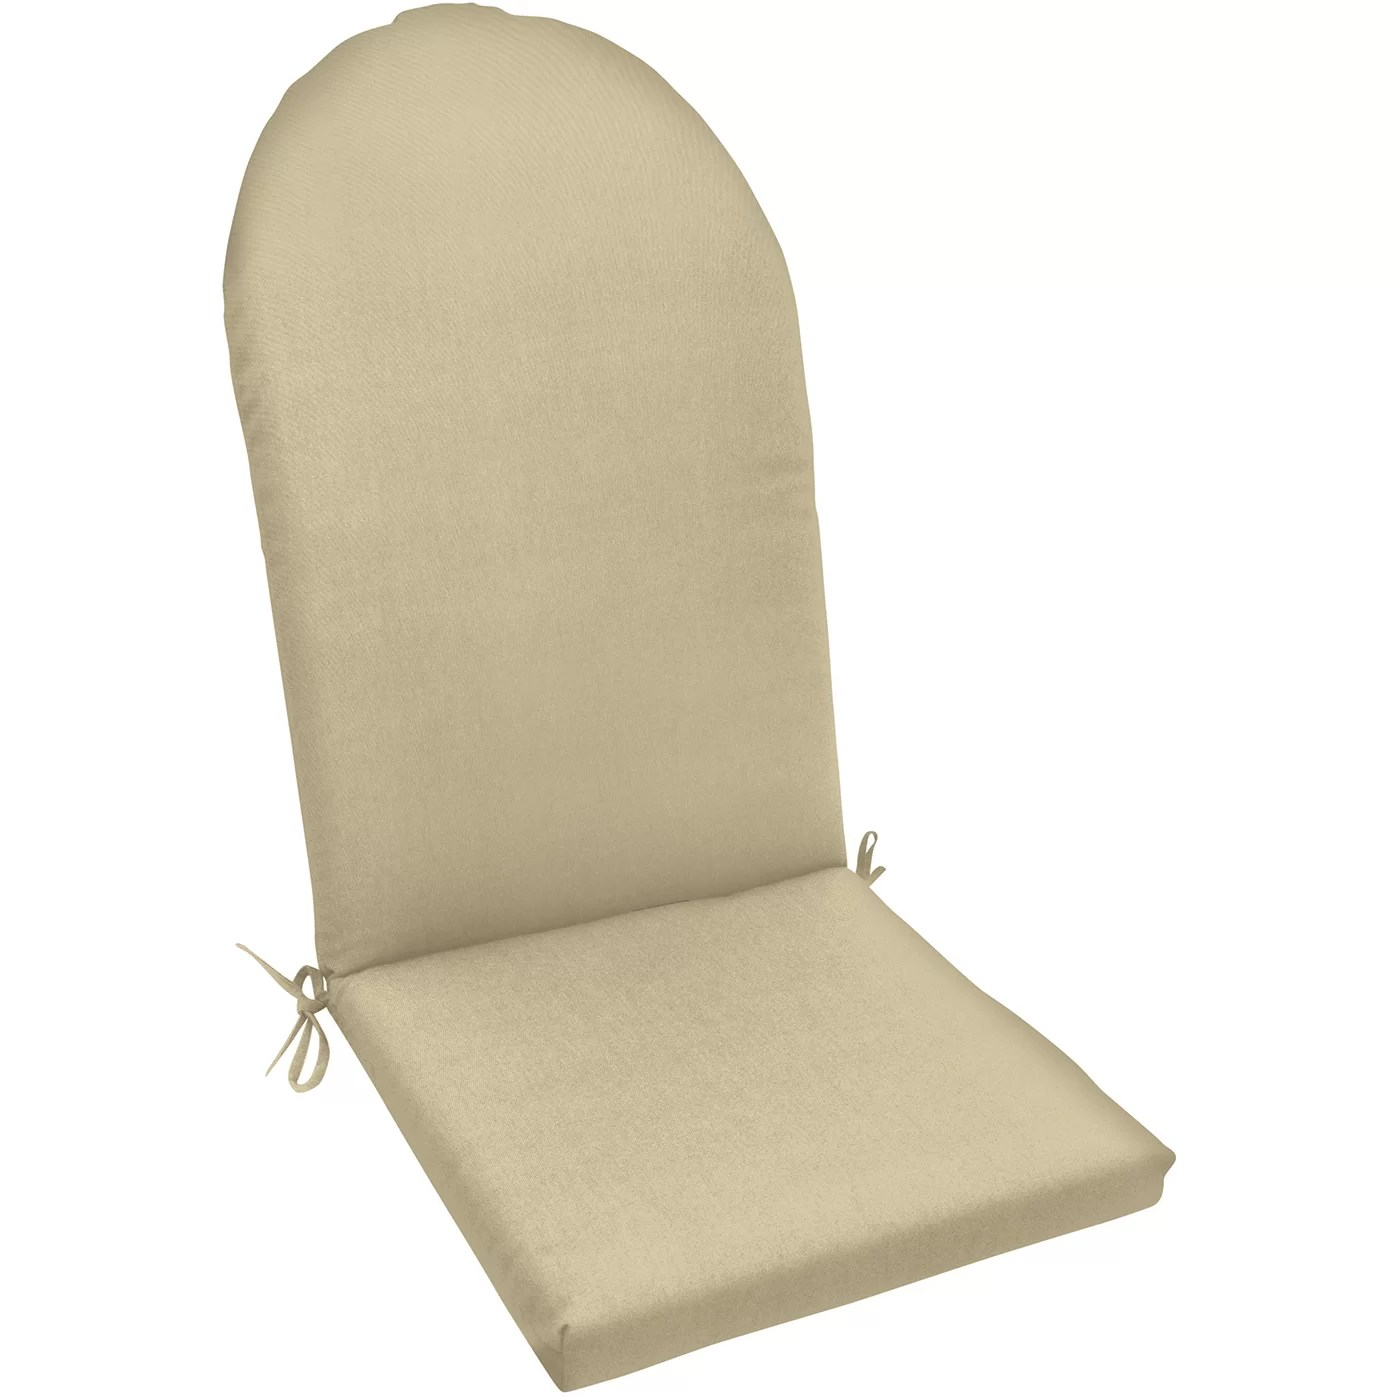 Sunbrella Adirondack Chair Cushions Wayfair Custom Outdoor Cushions Outdoor Sunbrella